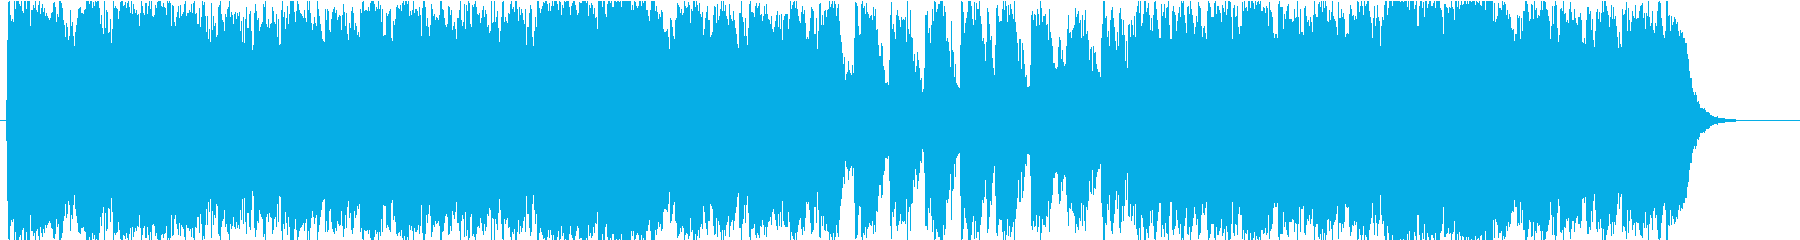 Pirate Hollywood Movie: Profound Chorus Orchestra's reproduced waveform